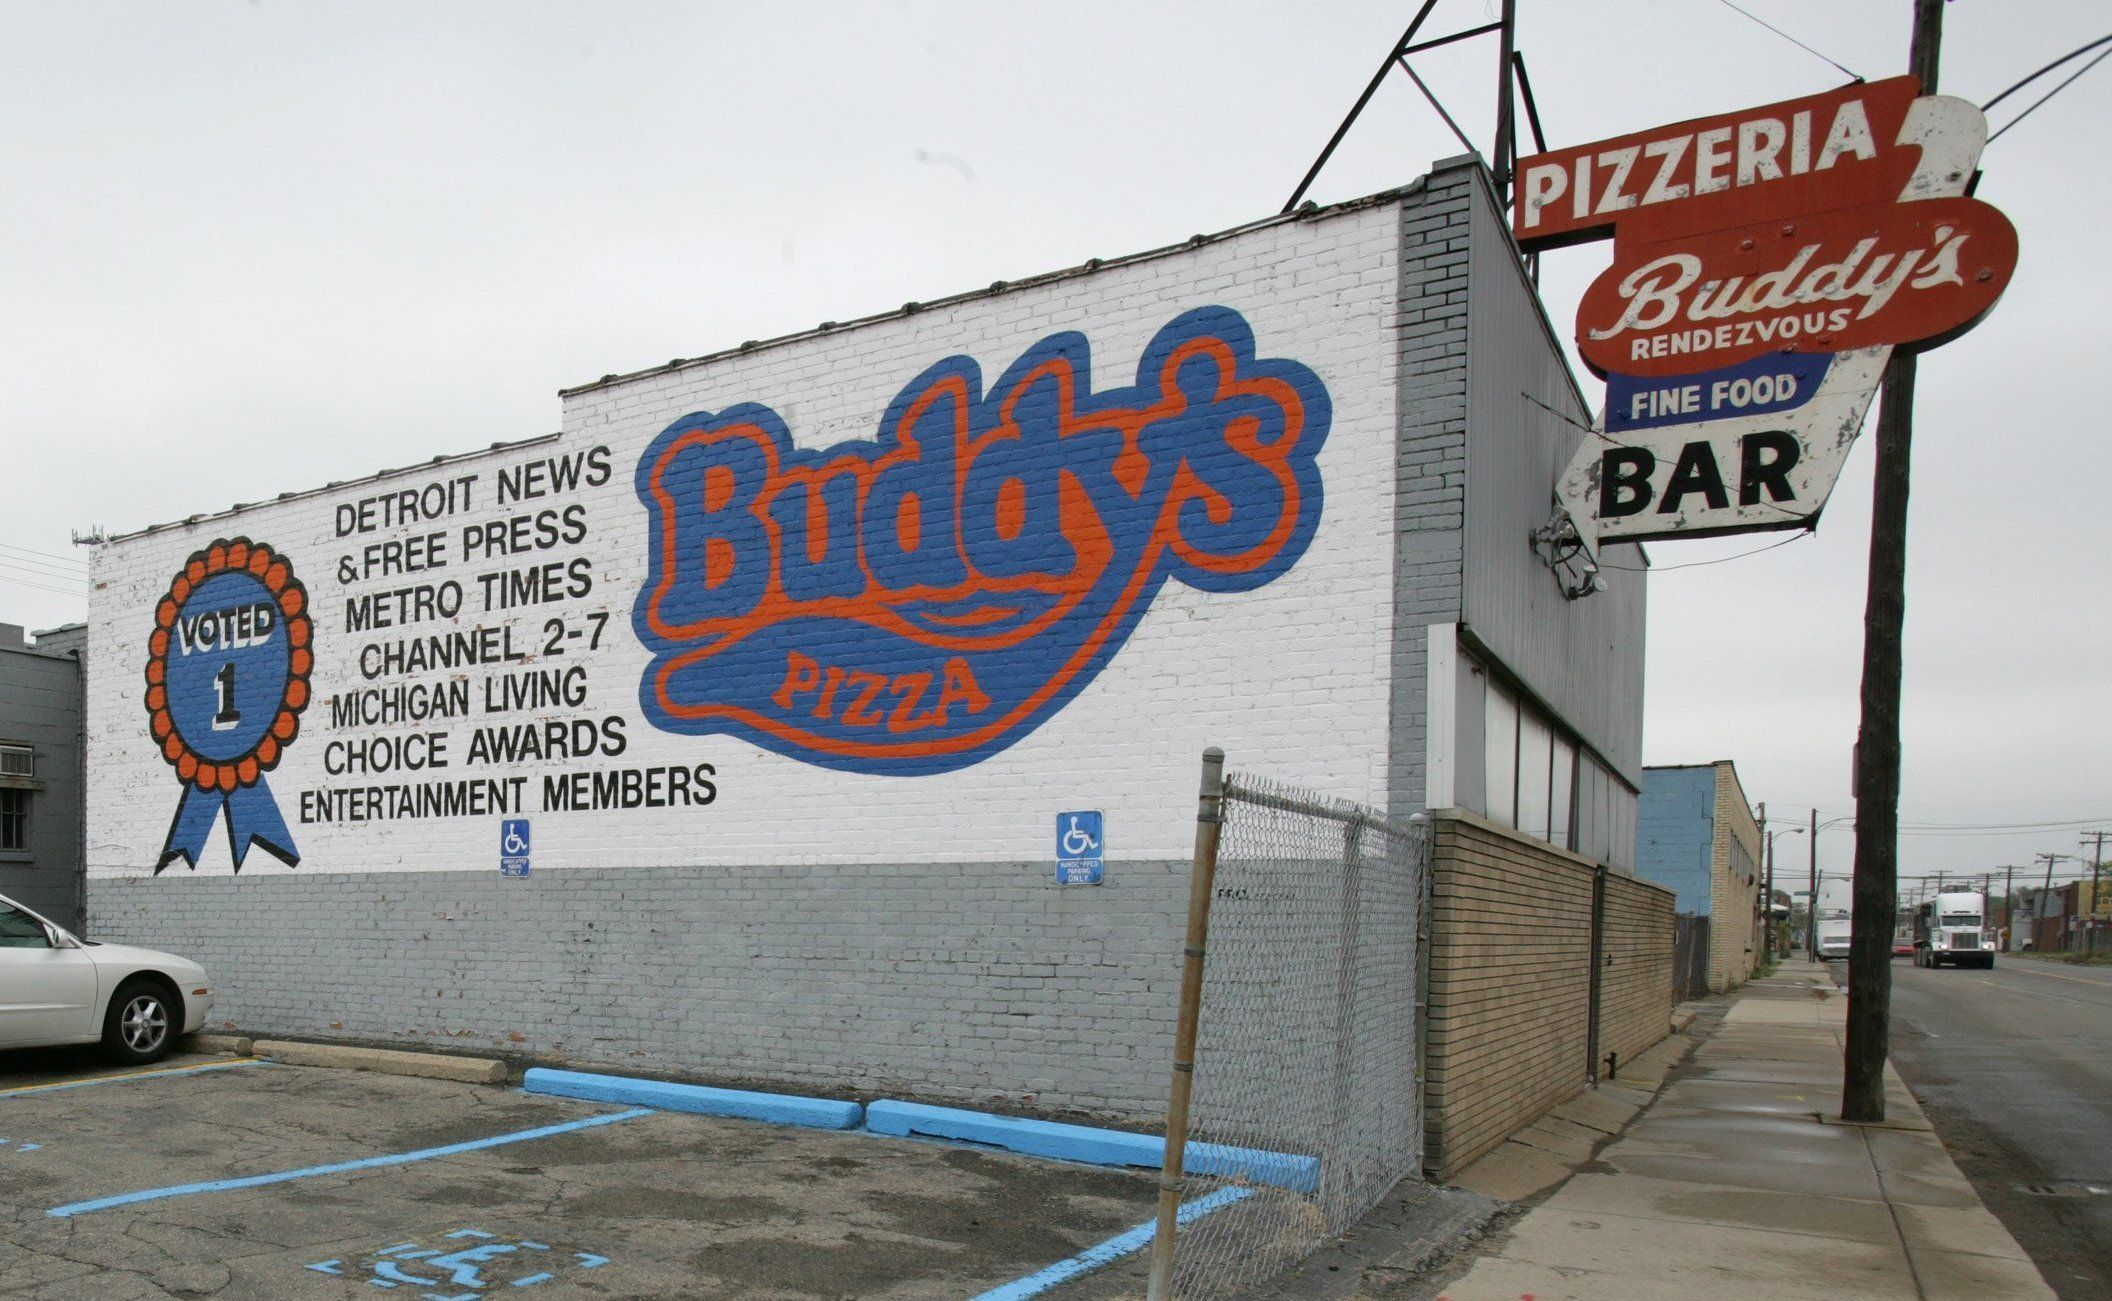 Buddy's Pizza announces plans to open Kalamazoo location